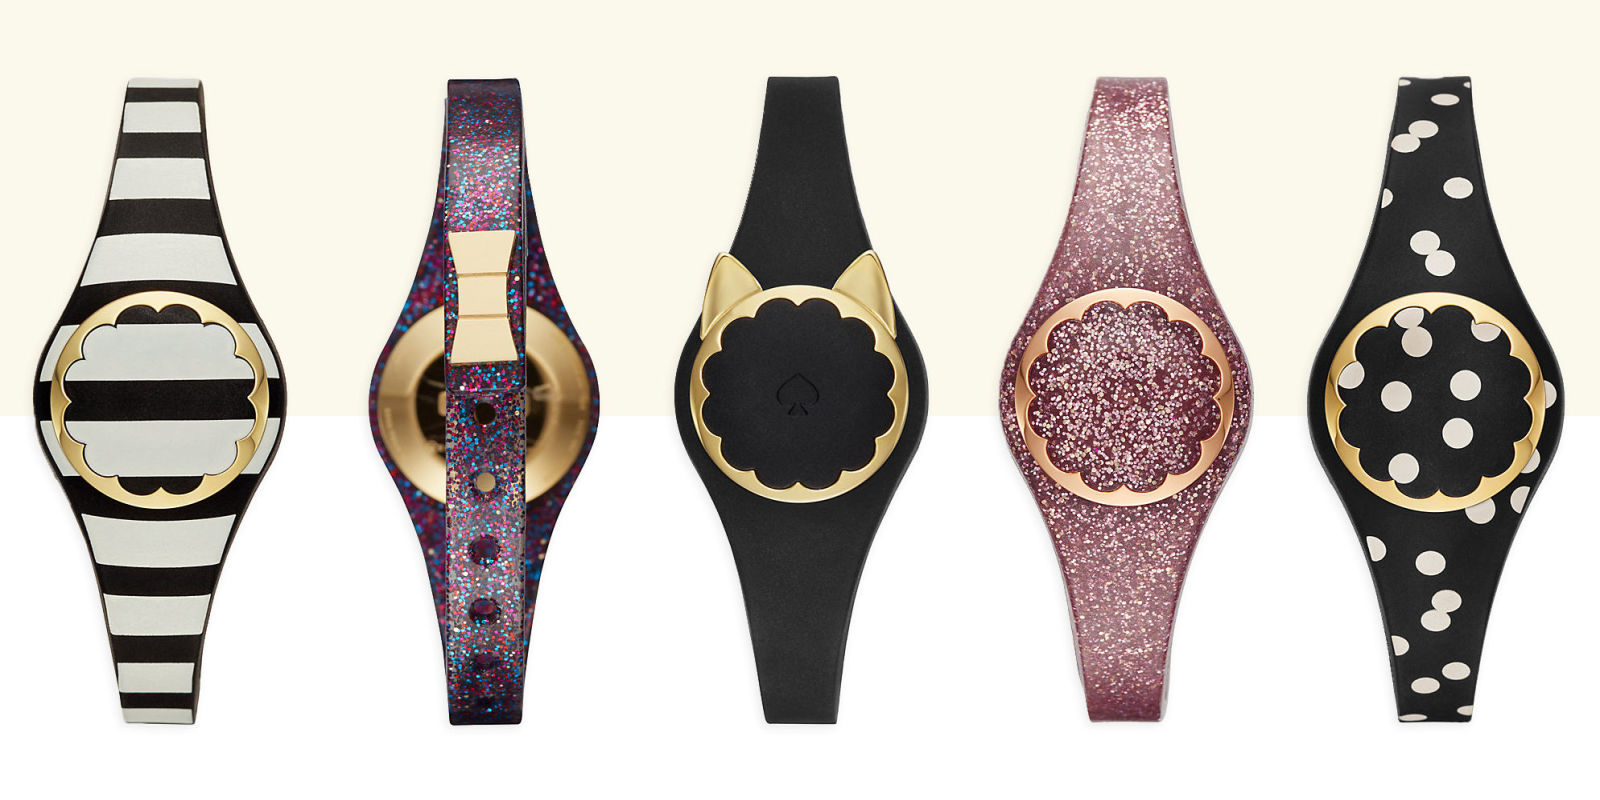 Kate Spade Launches Line of Fashionable Fitness Trackers